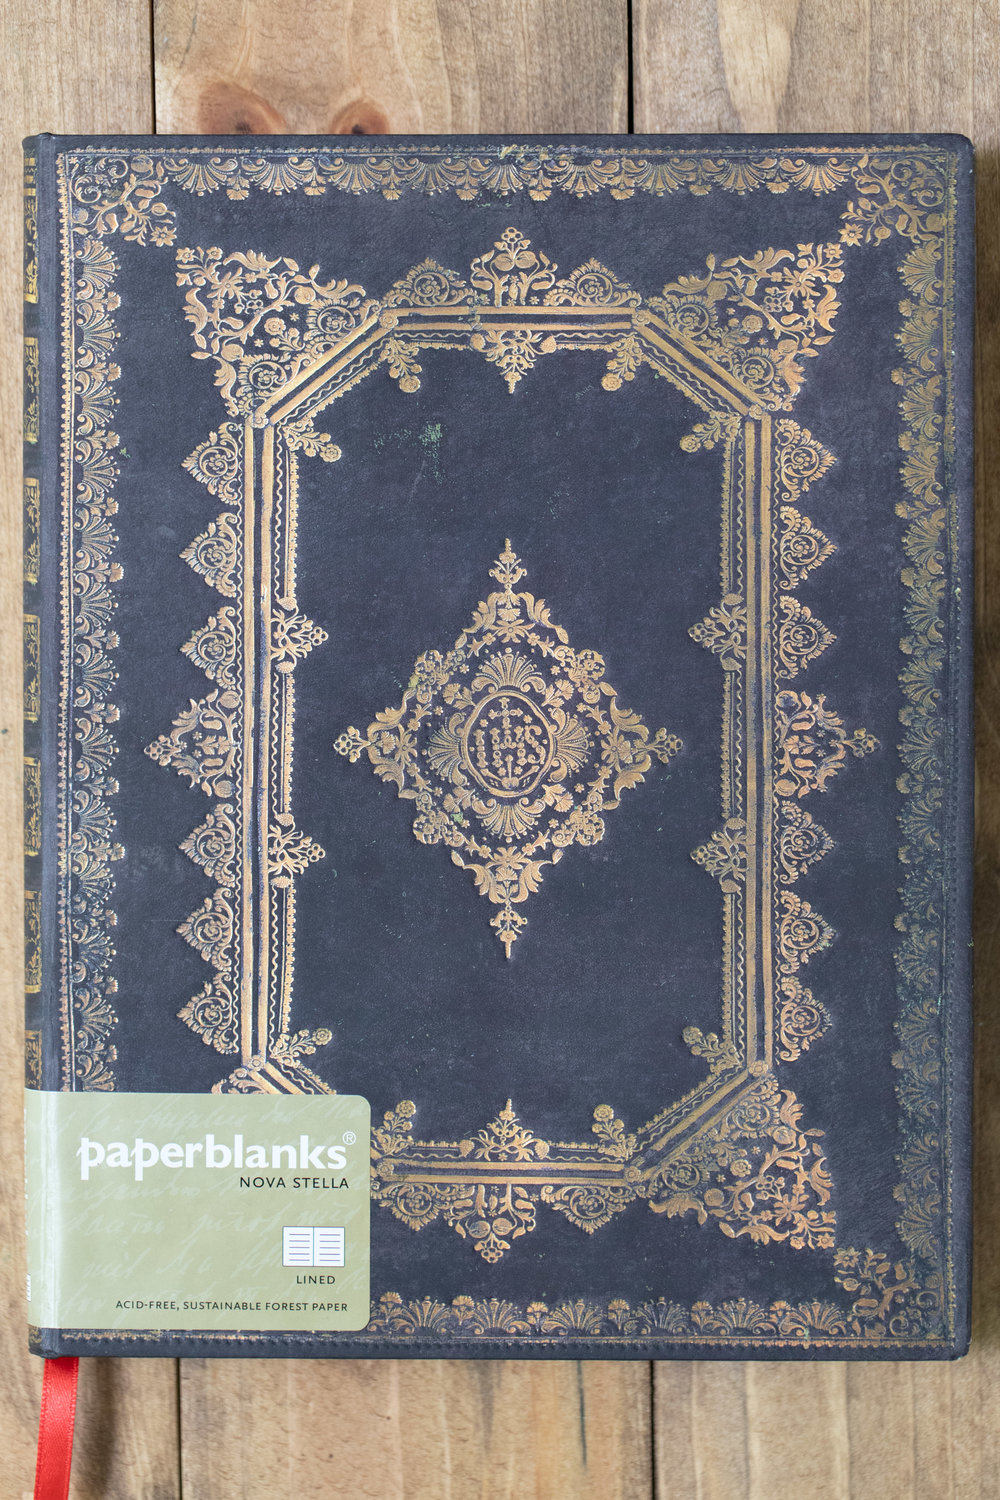 """Size - The notebook is 7"""" by 9"""", the Paperblanks Ultra size."""